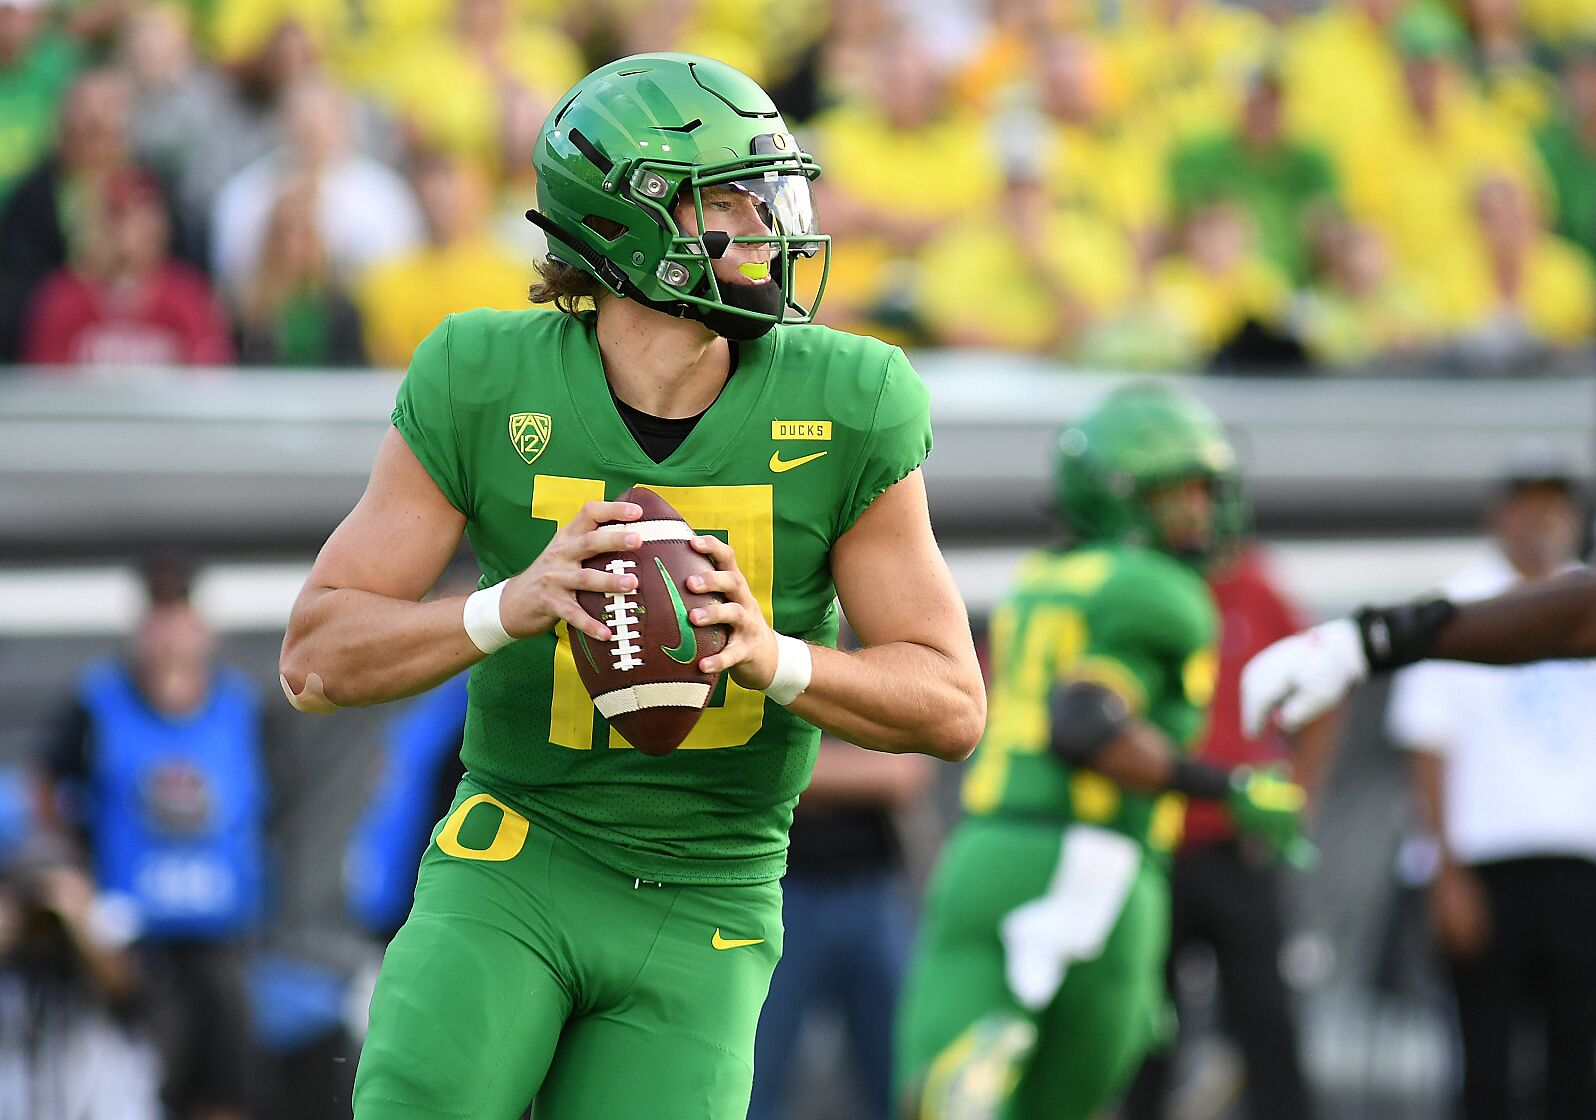 Pac-12 football 2019 preview: Can Oregon, Utah live up to preseason hype?